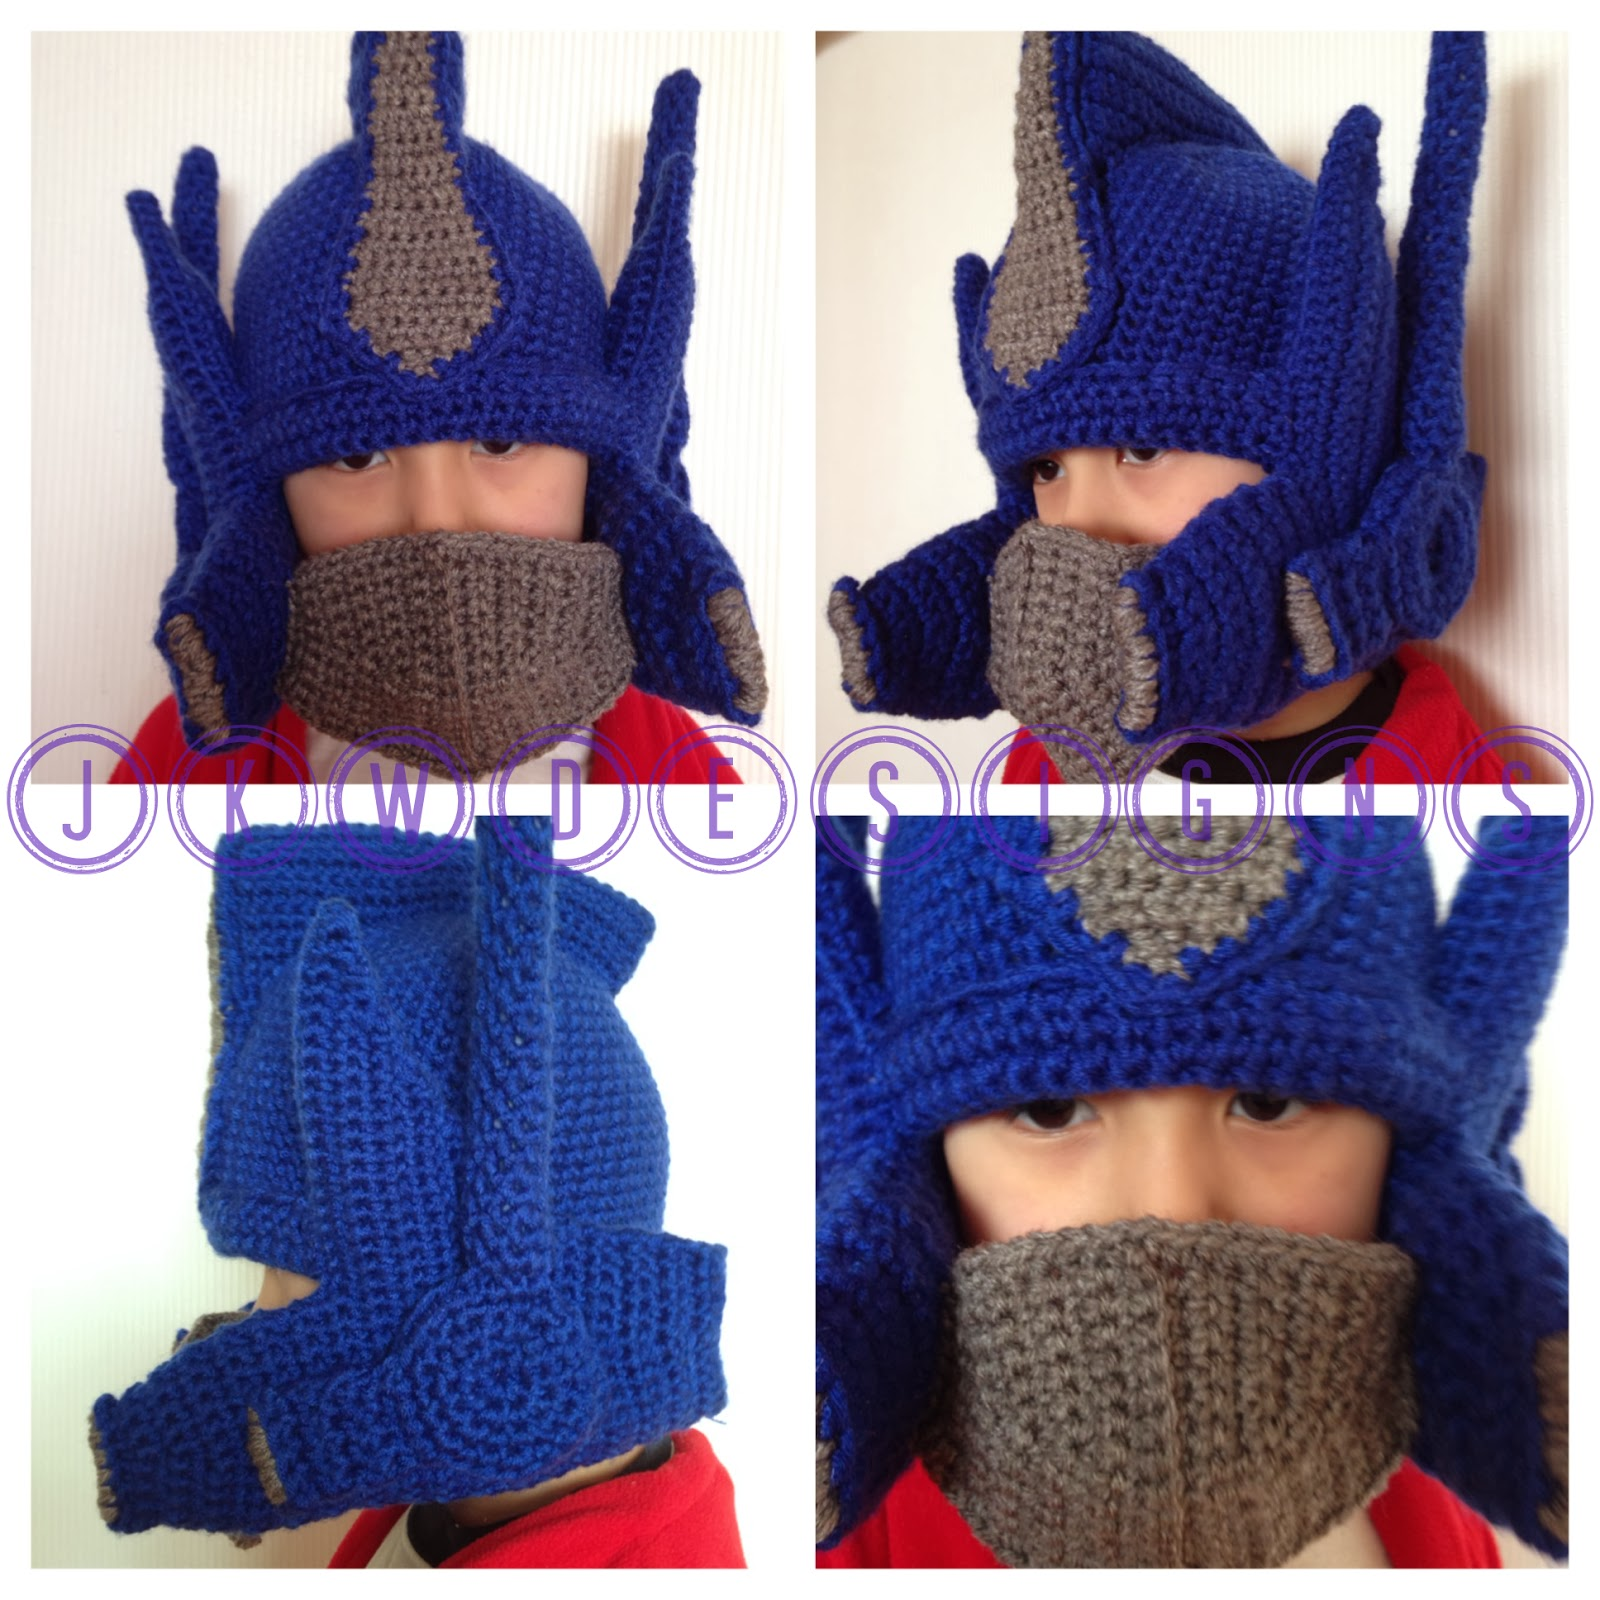 Crochet Pattern For Optimus Prime Hat : Crochet Optimus Prime Hat